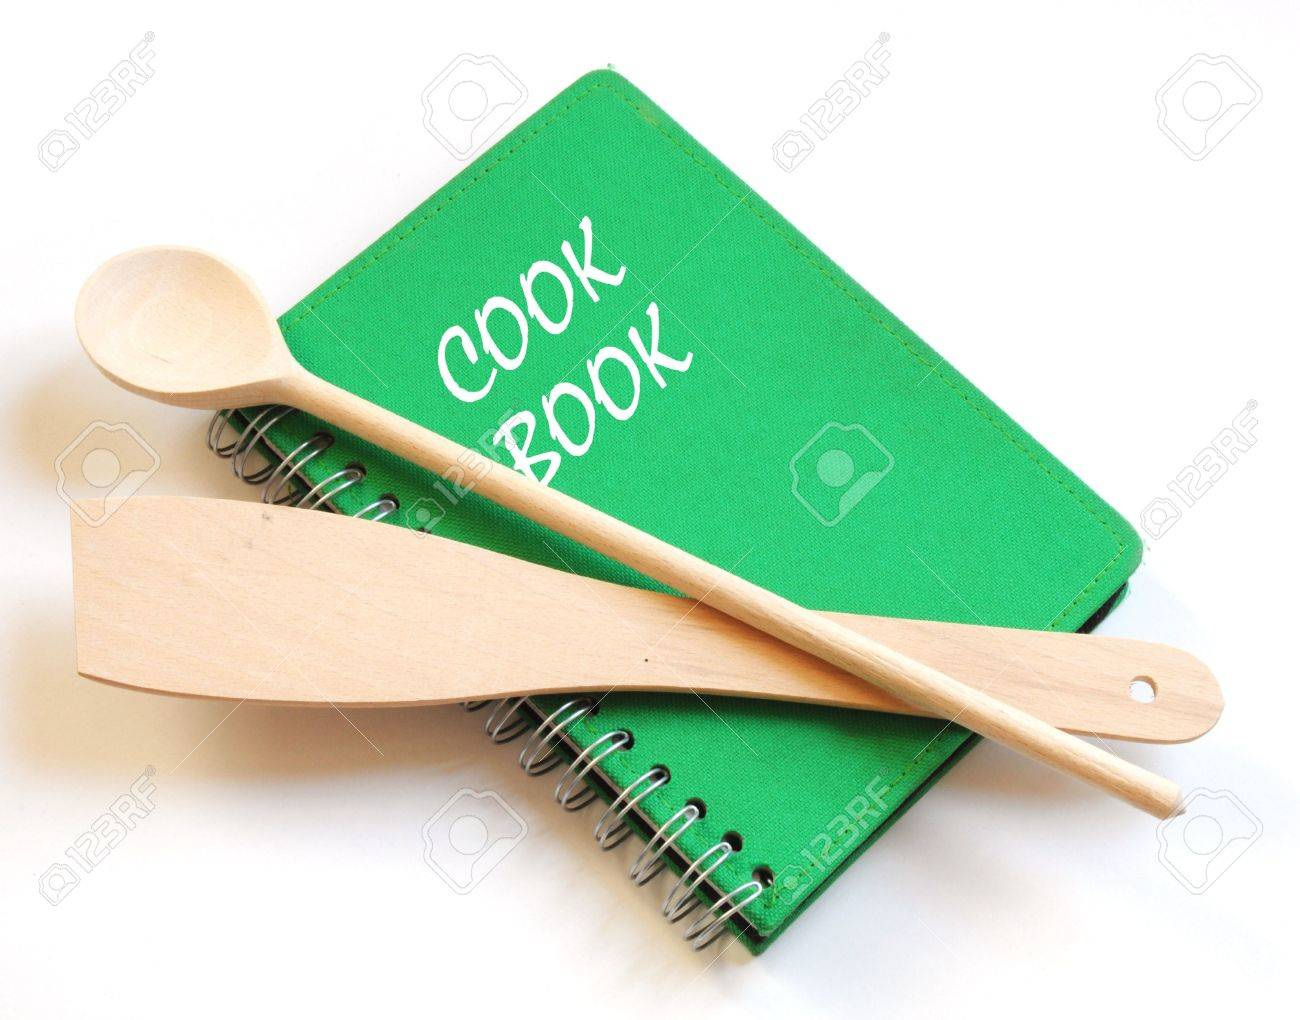 green cookbook and kitchenware isolated on white background Stock Photo - 9041303